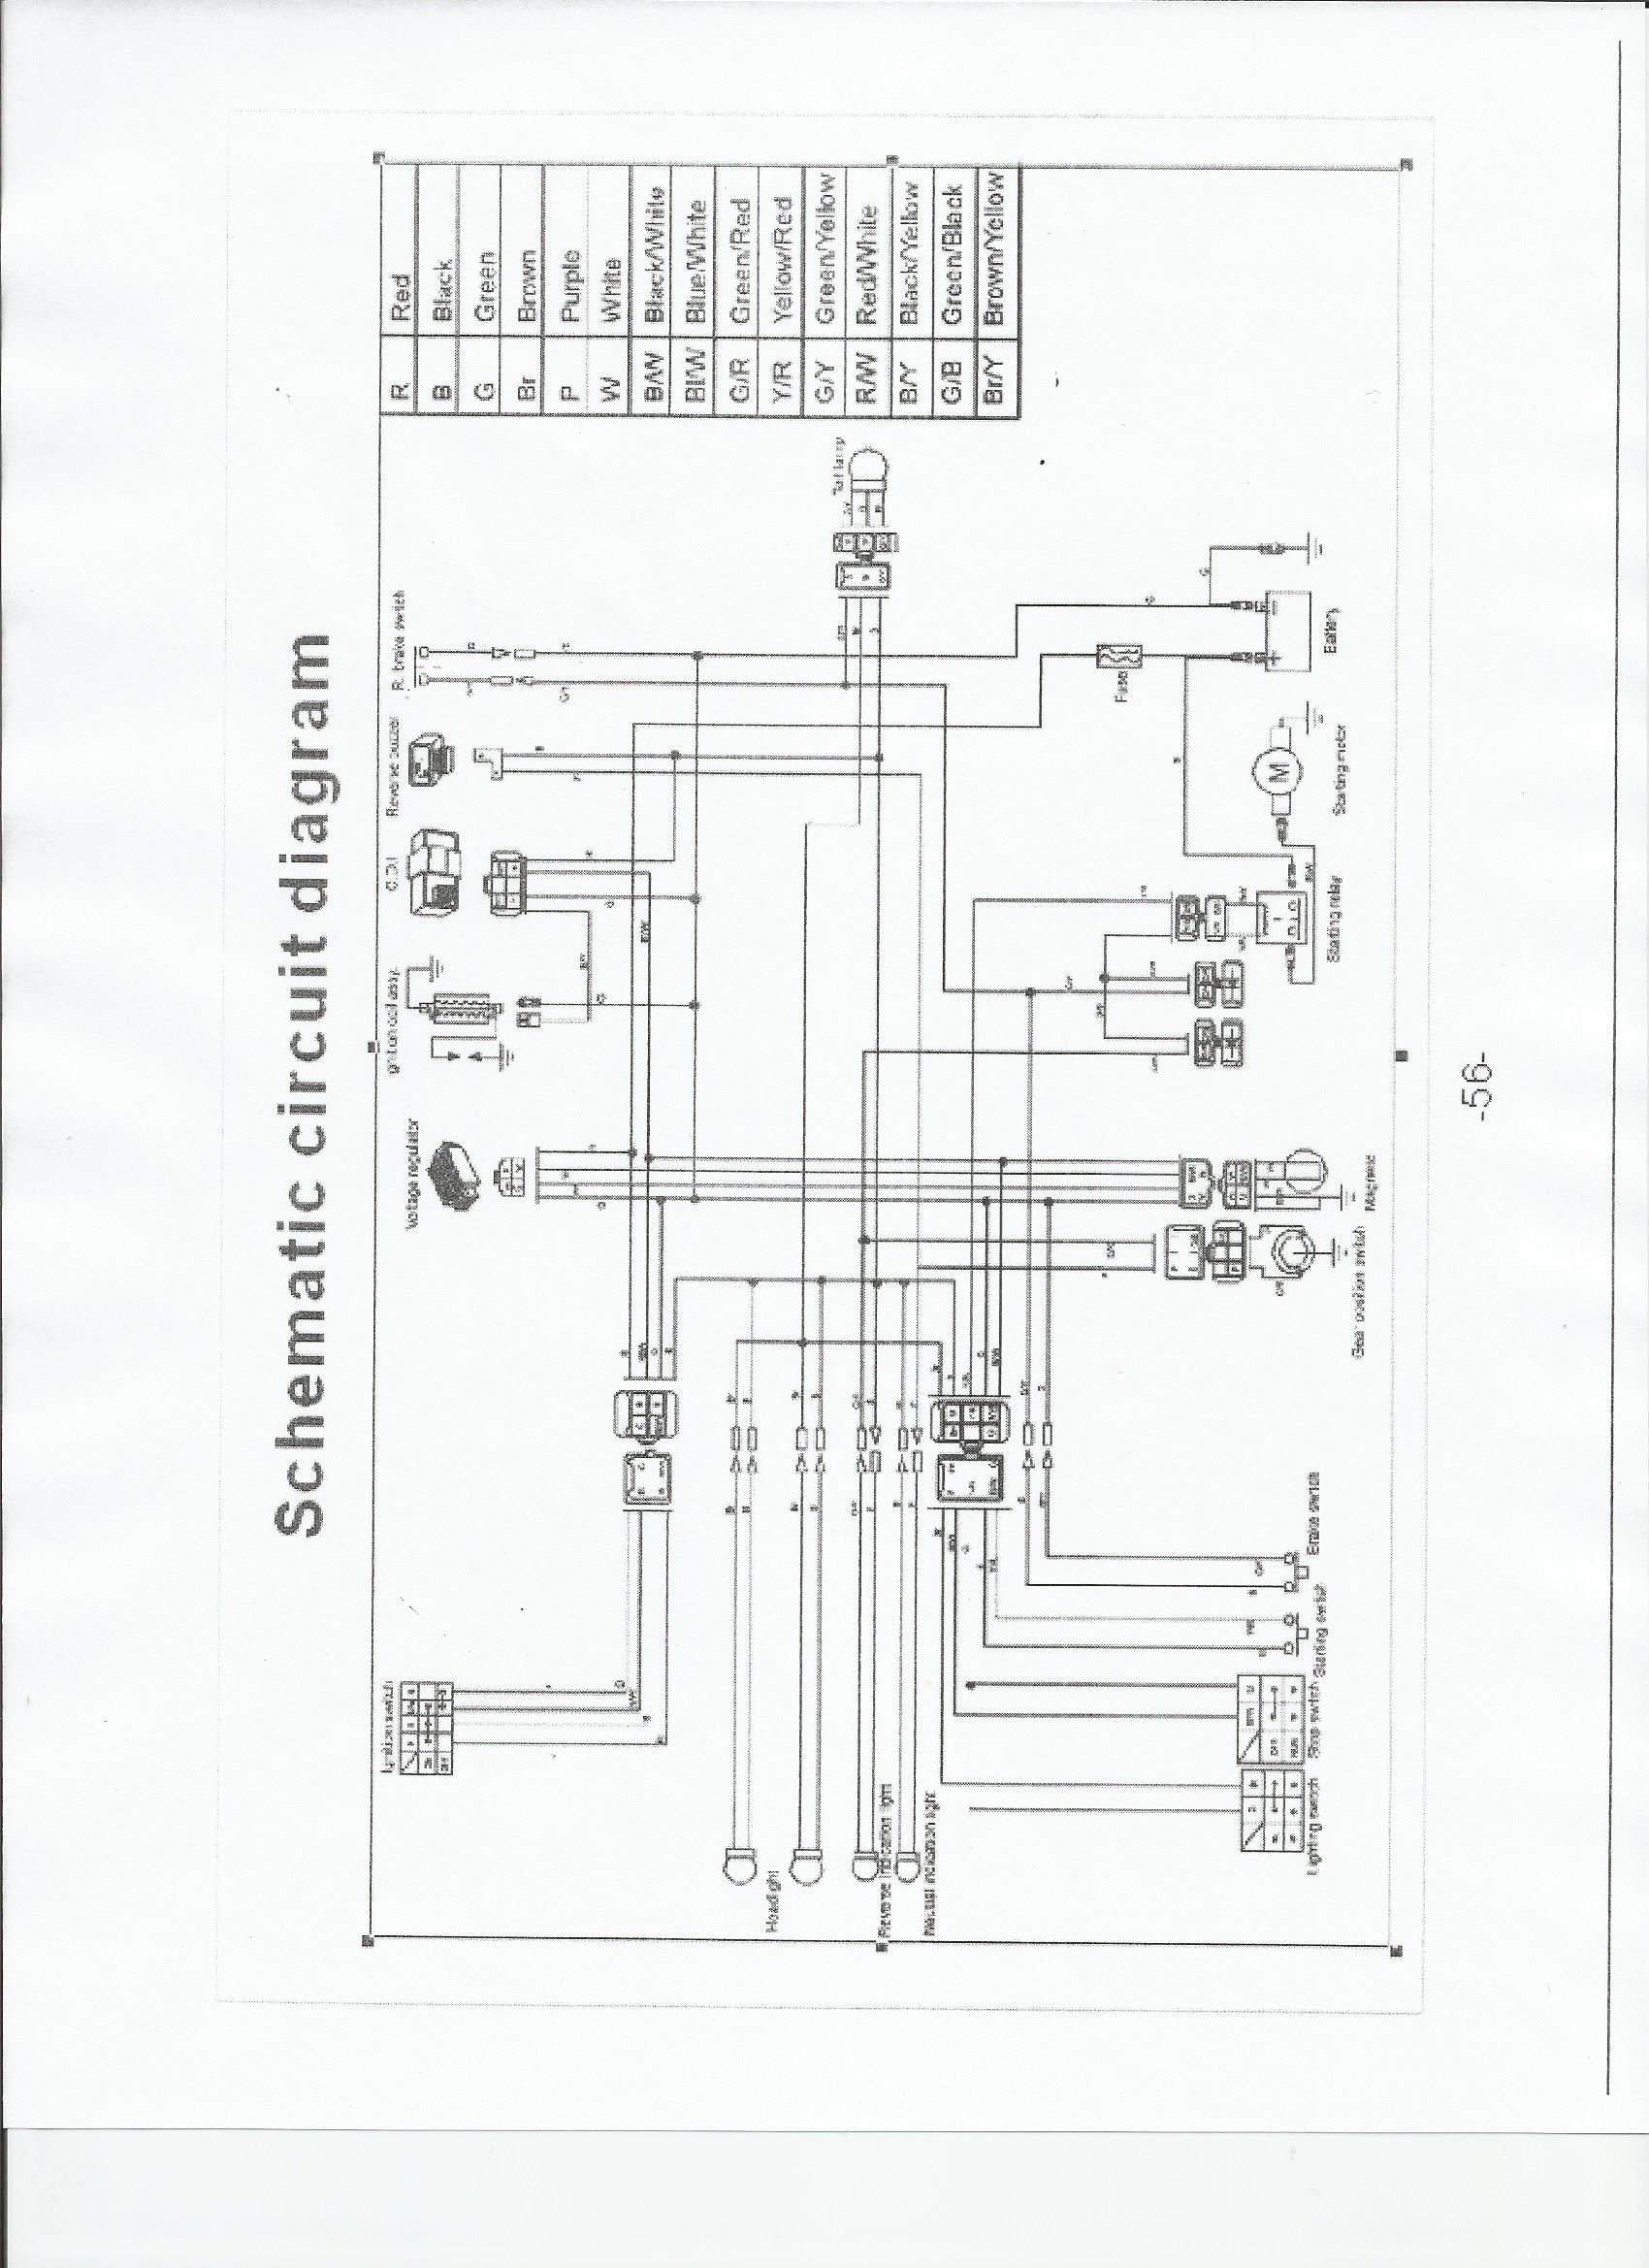 tao tao wiring schematic taotao ata110 b wiring diagram taotao 110cc wiring diagram 125Cc Chinese ATV Wiring Diagram at gsmx.co